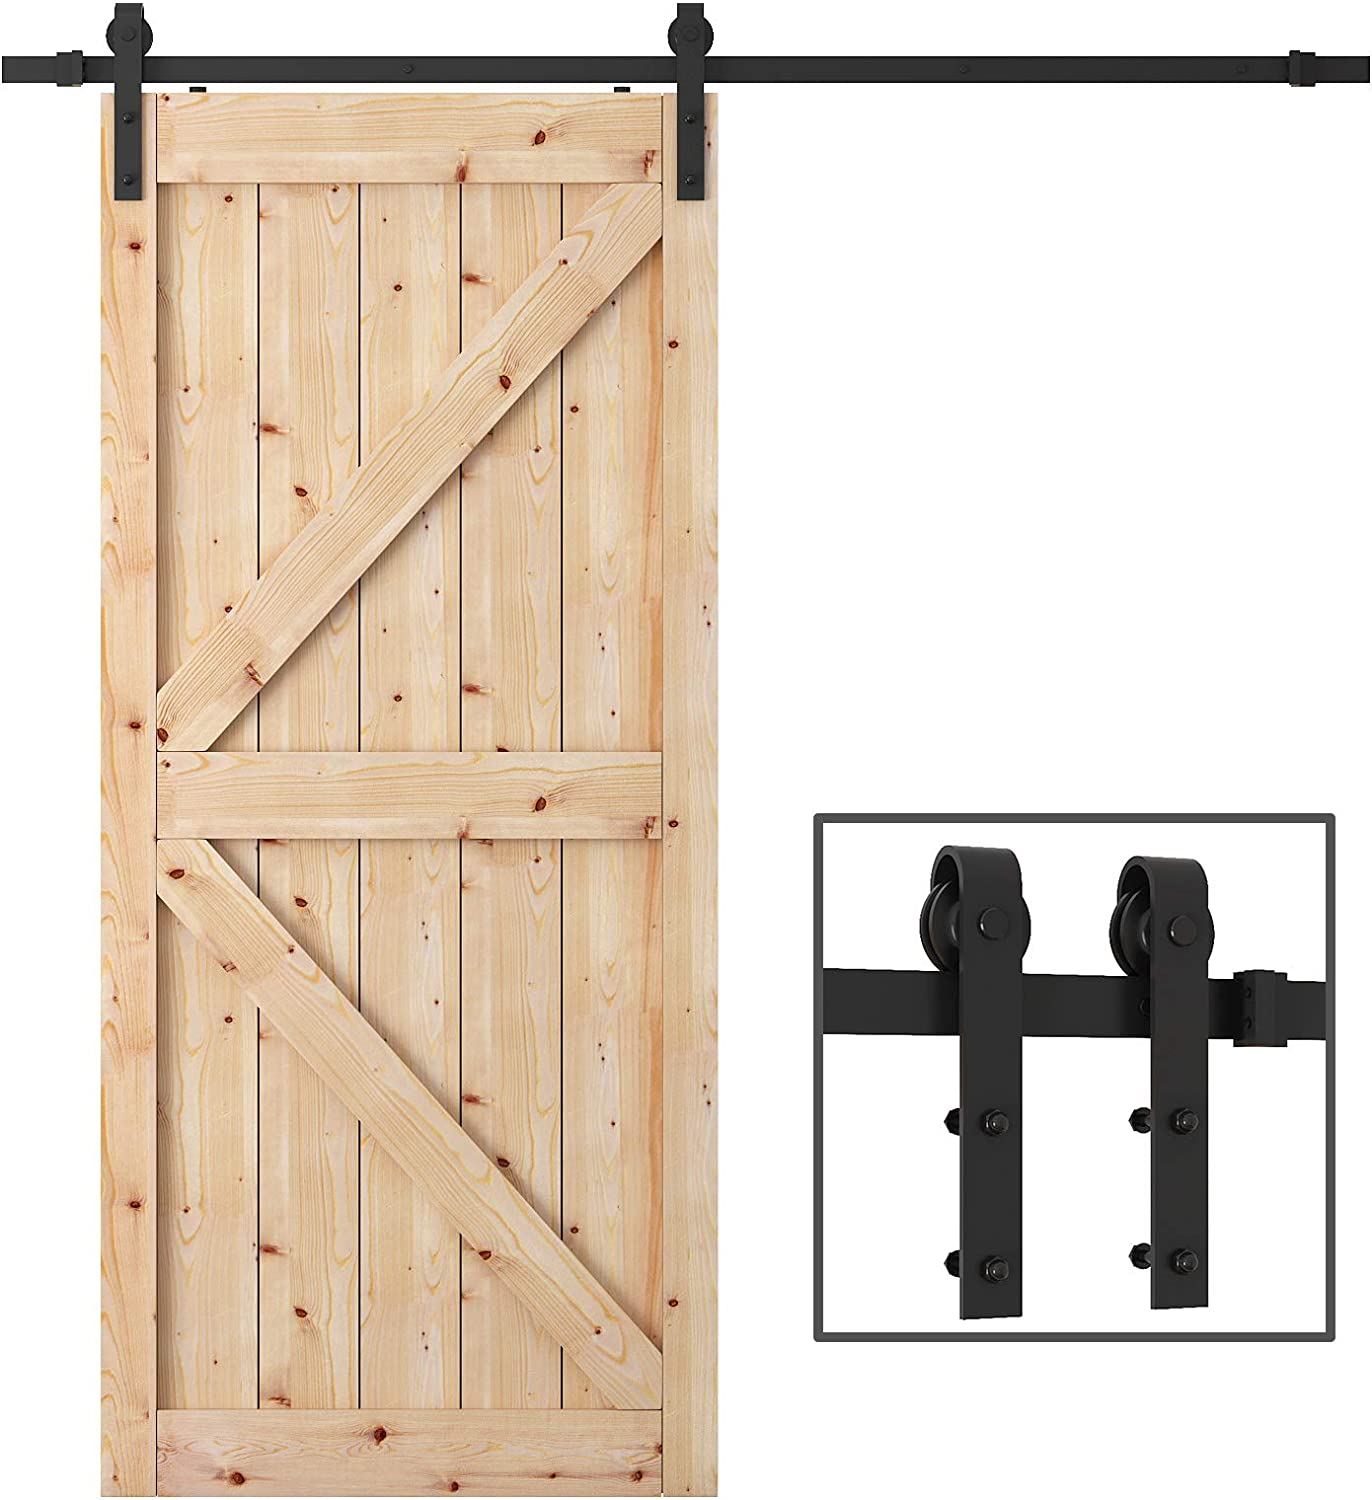 WBHome SDH-A023-BK Sliding Barn Door Hardware Kit Black 6.6 FT-Antique Style